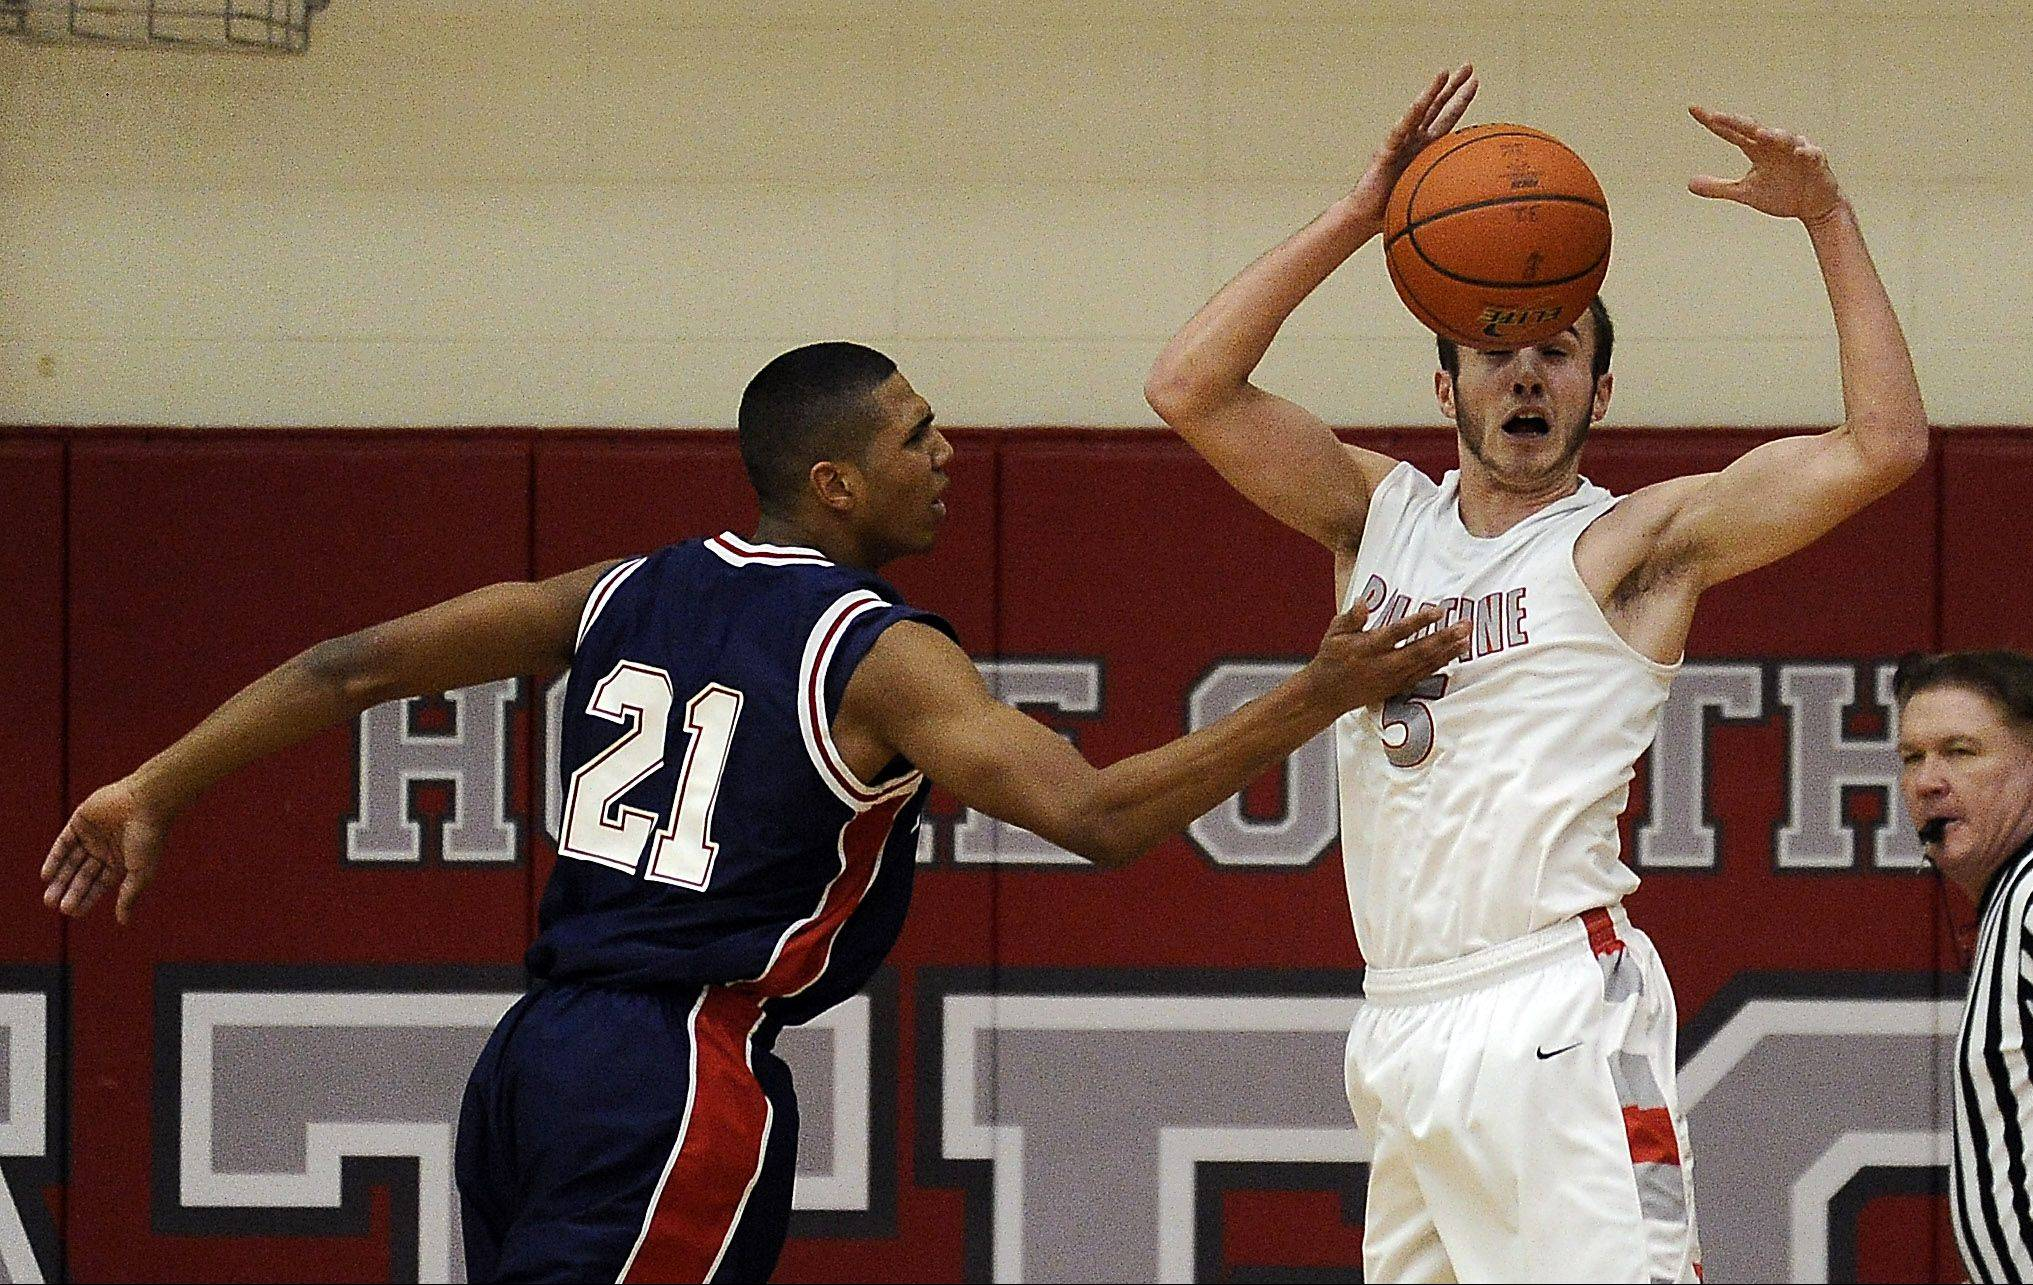 Palatine's Chris Macahon tries to control the ball and keep it away from Conant's D'Angelo McBride in the first half on Thursday at Palatine.